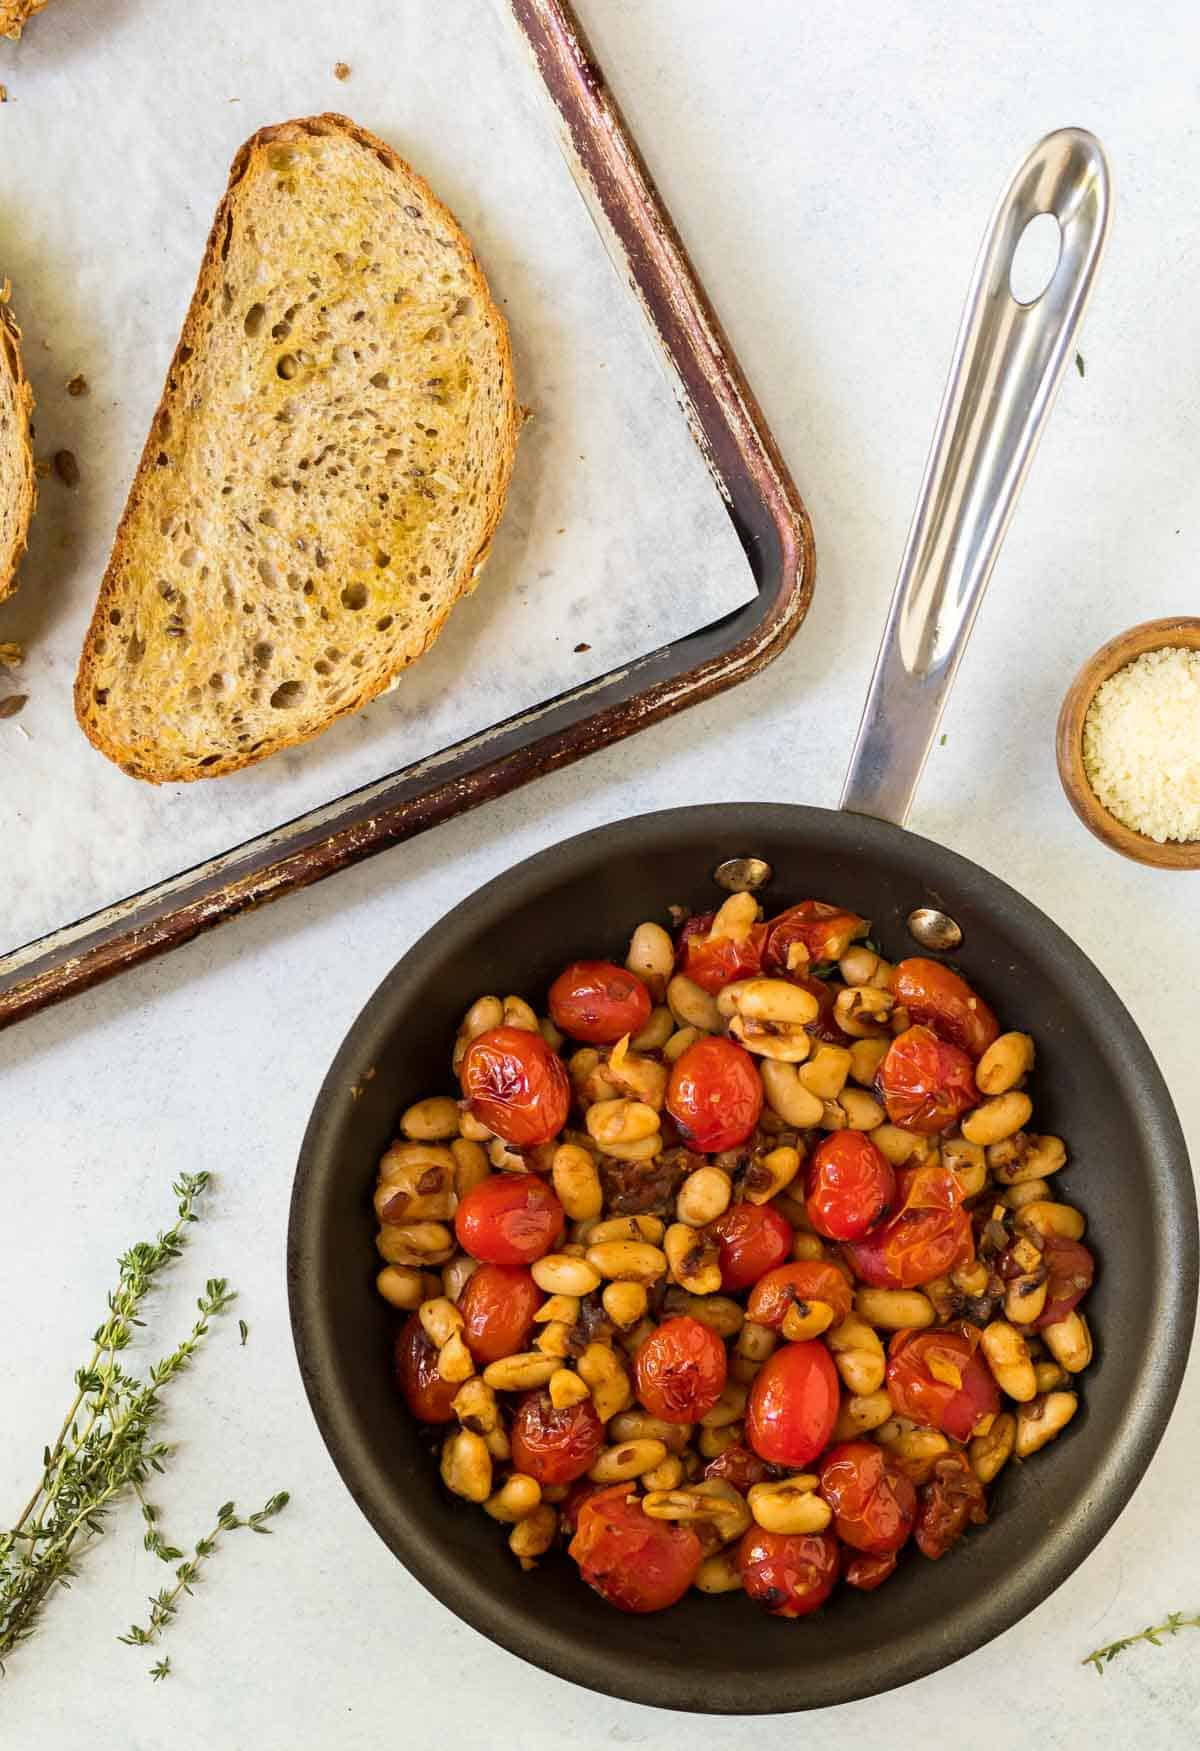 Tuscan white beans with sauteed cherry tomatoes served on toasted bread.